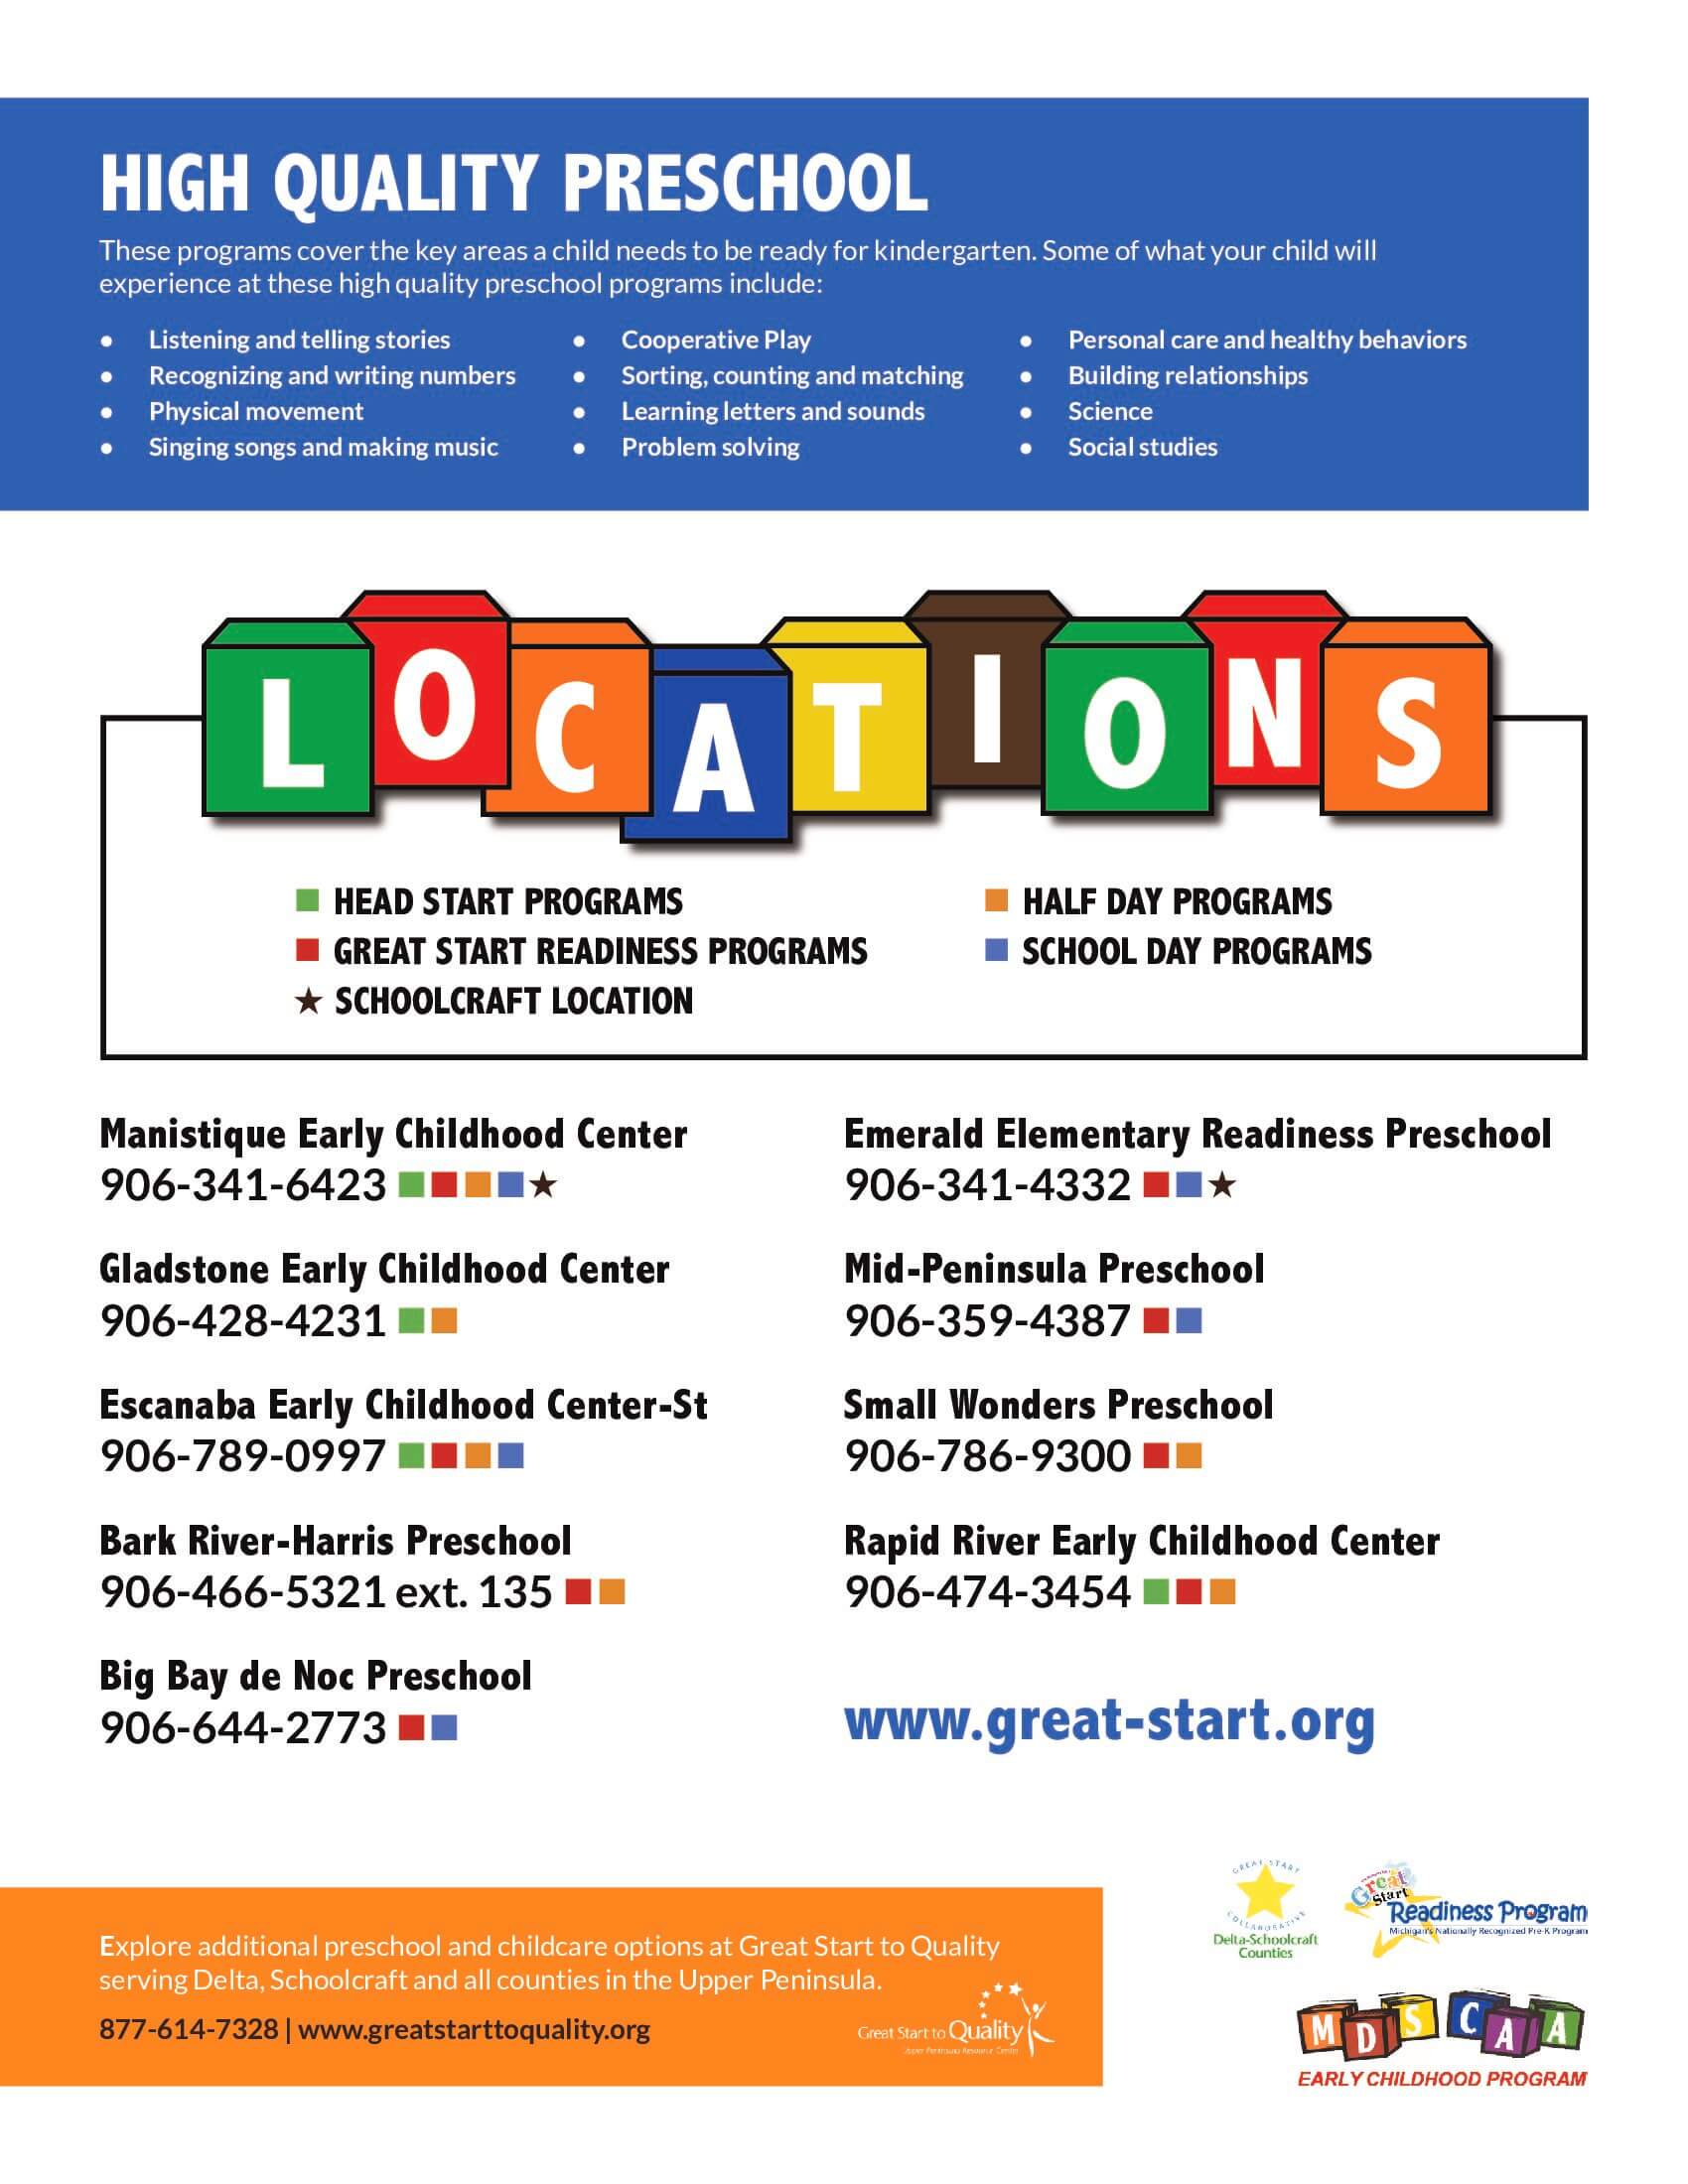 Delta free preschool locations 2018-2019